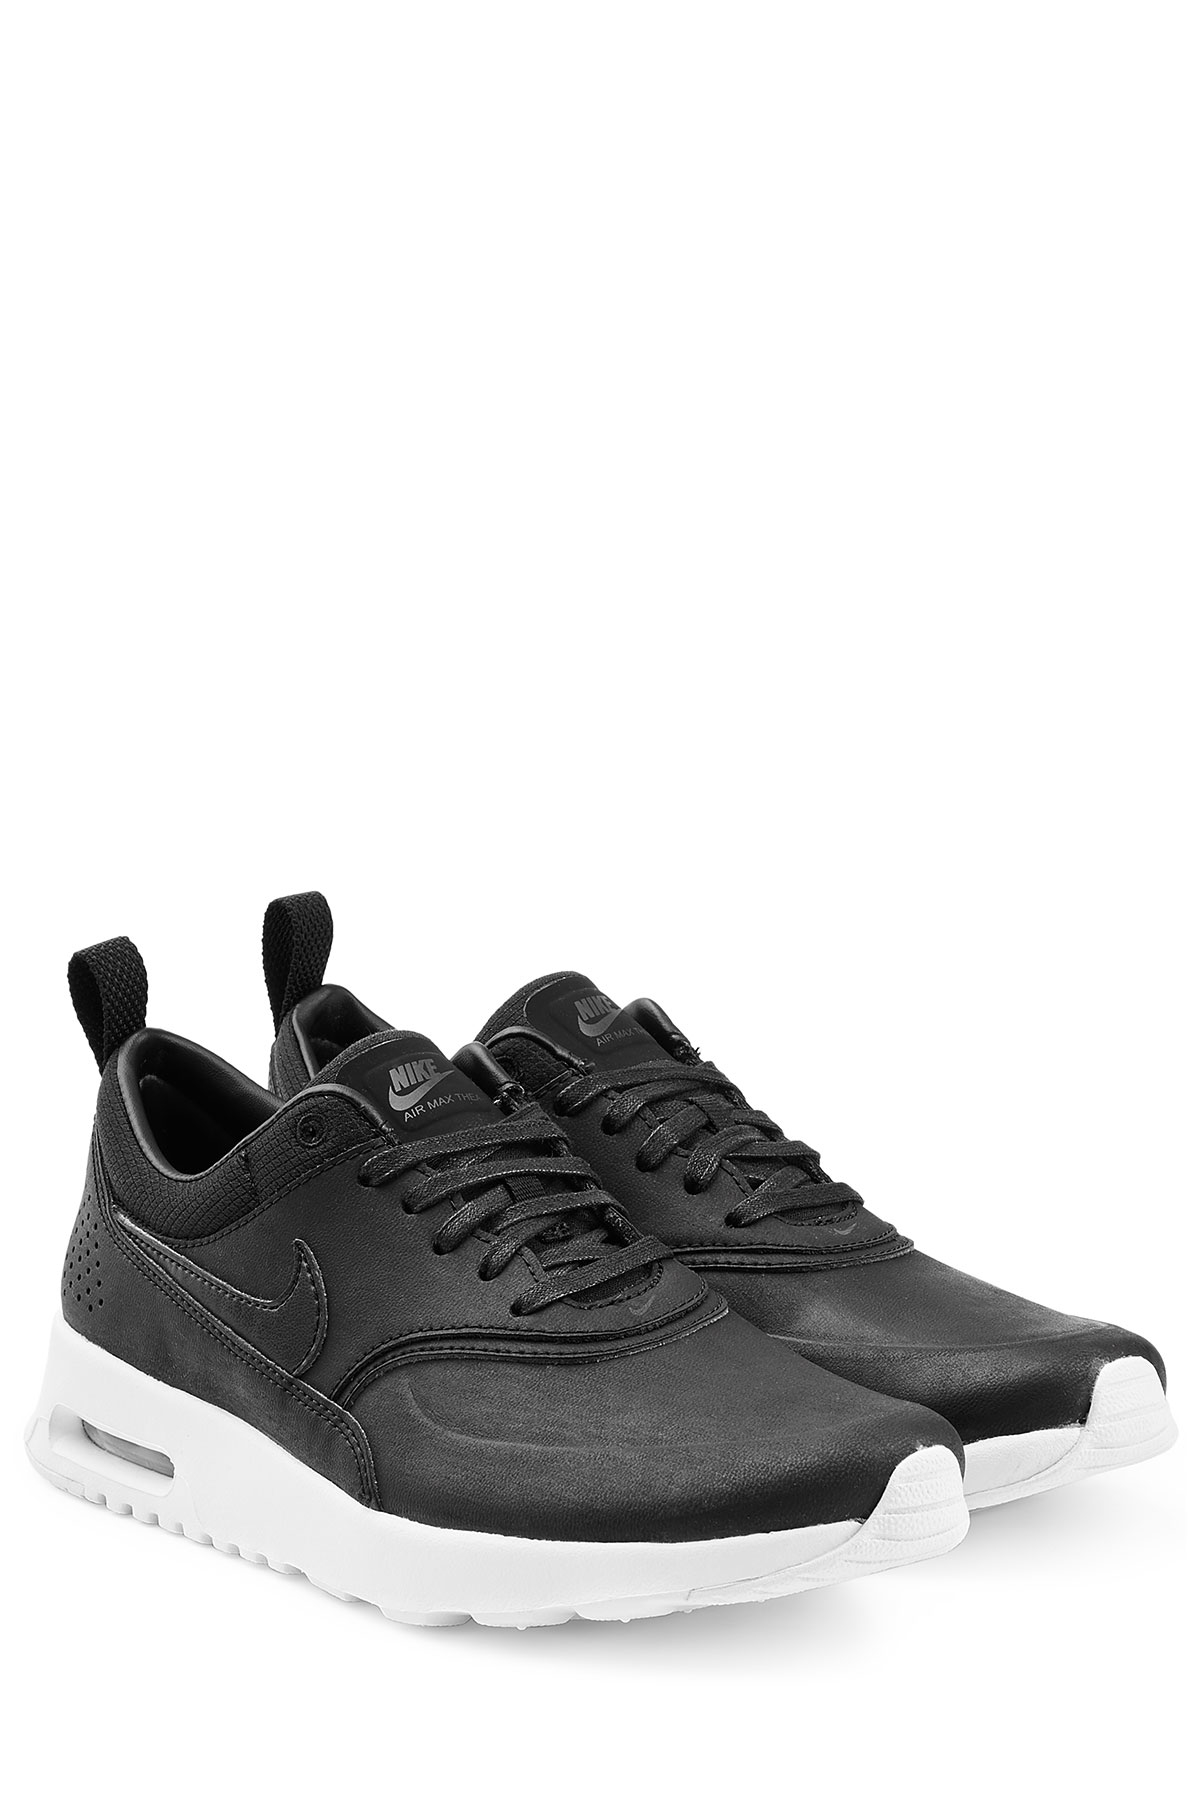 nike air max thea premium leather sneakers black in. Black Bedroom Furniture Sets. Home Design Ideas